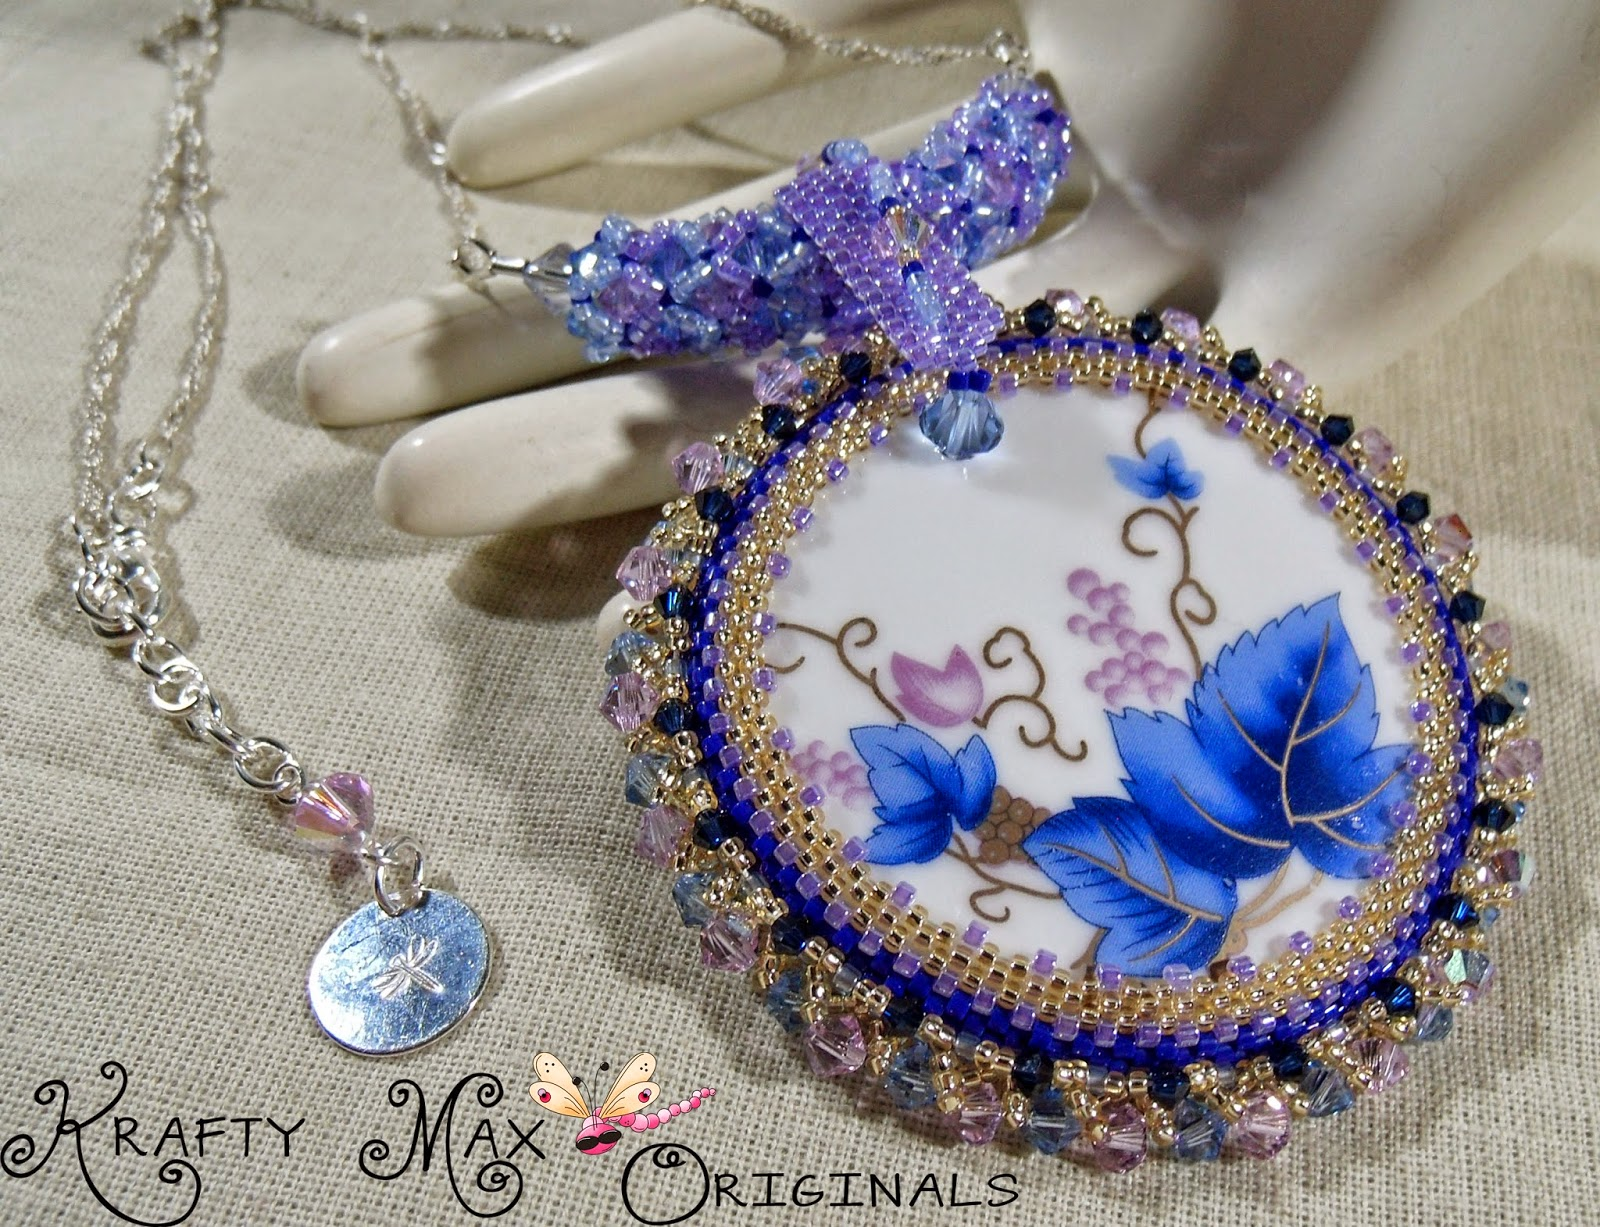 http://www.artfire.com/ext/shop/product_view/KraftyMax/9750132/ms_marrianne_blue_bell_-_handmade_beadwoven_swarovski_crystal_set/handmade/jewelry/necklaces/beadwoven